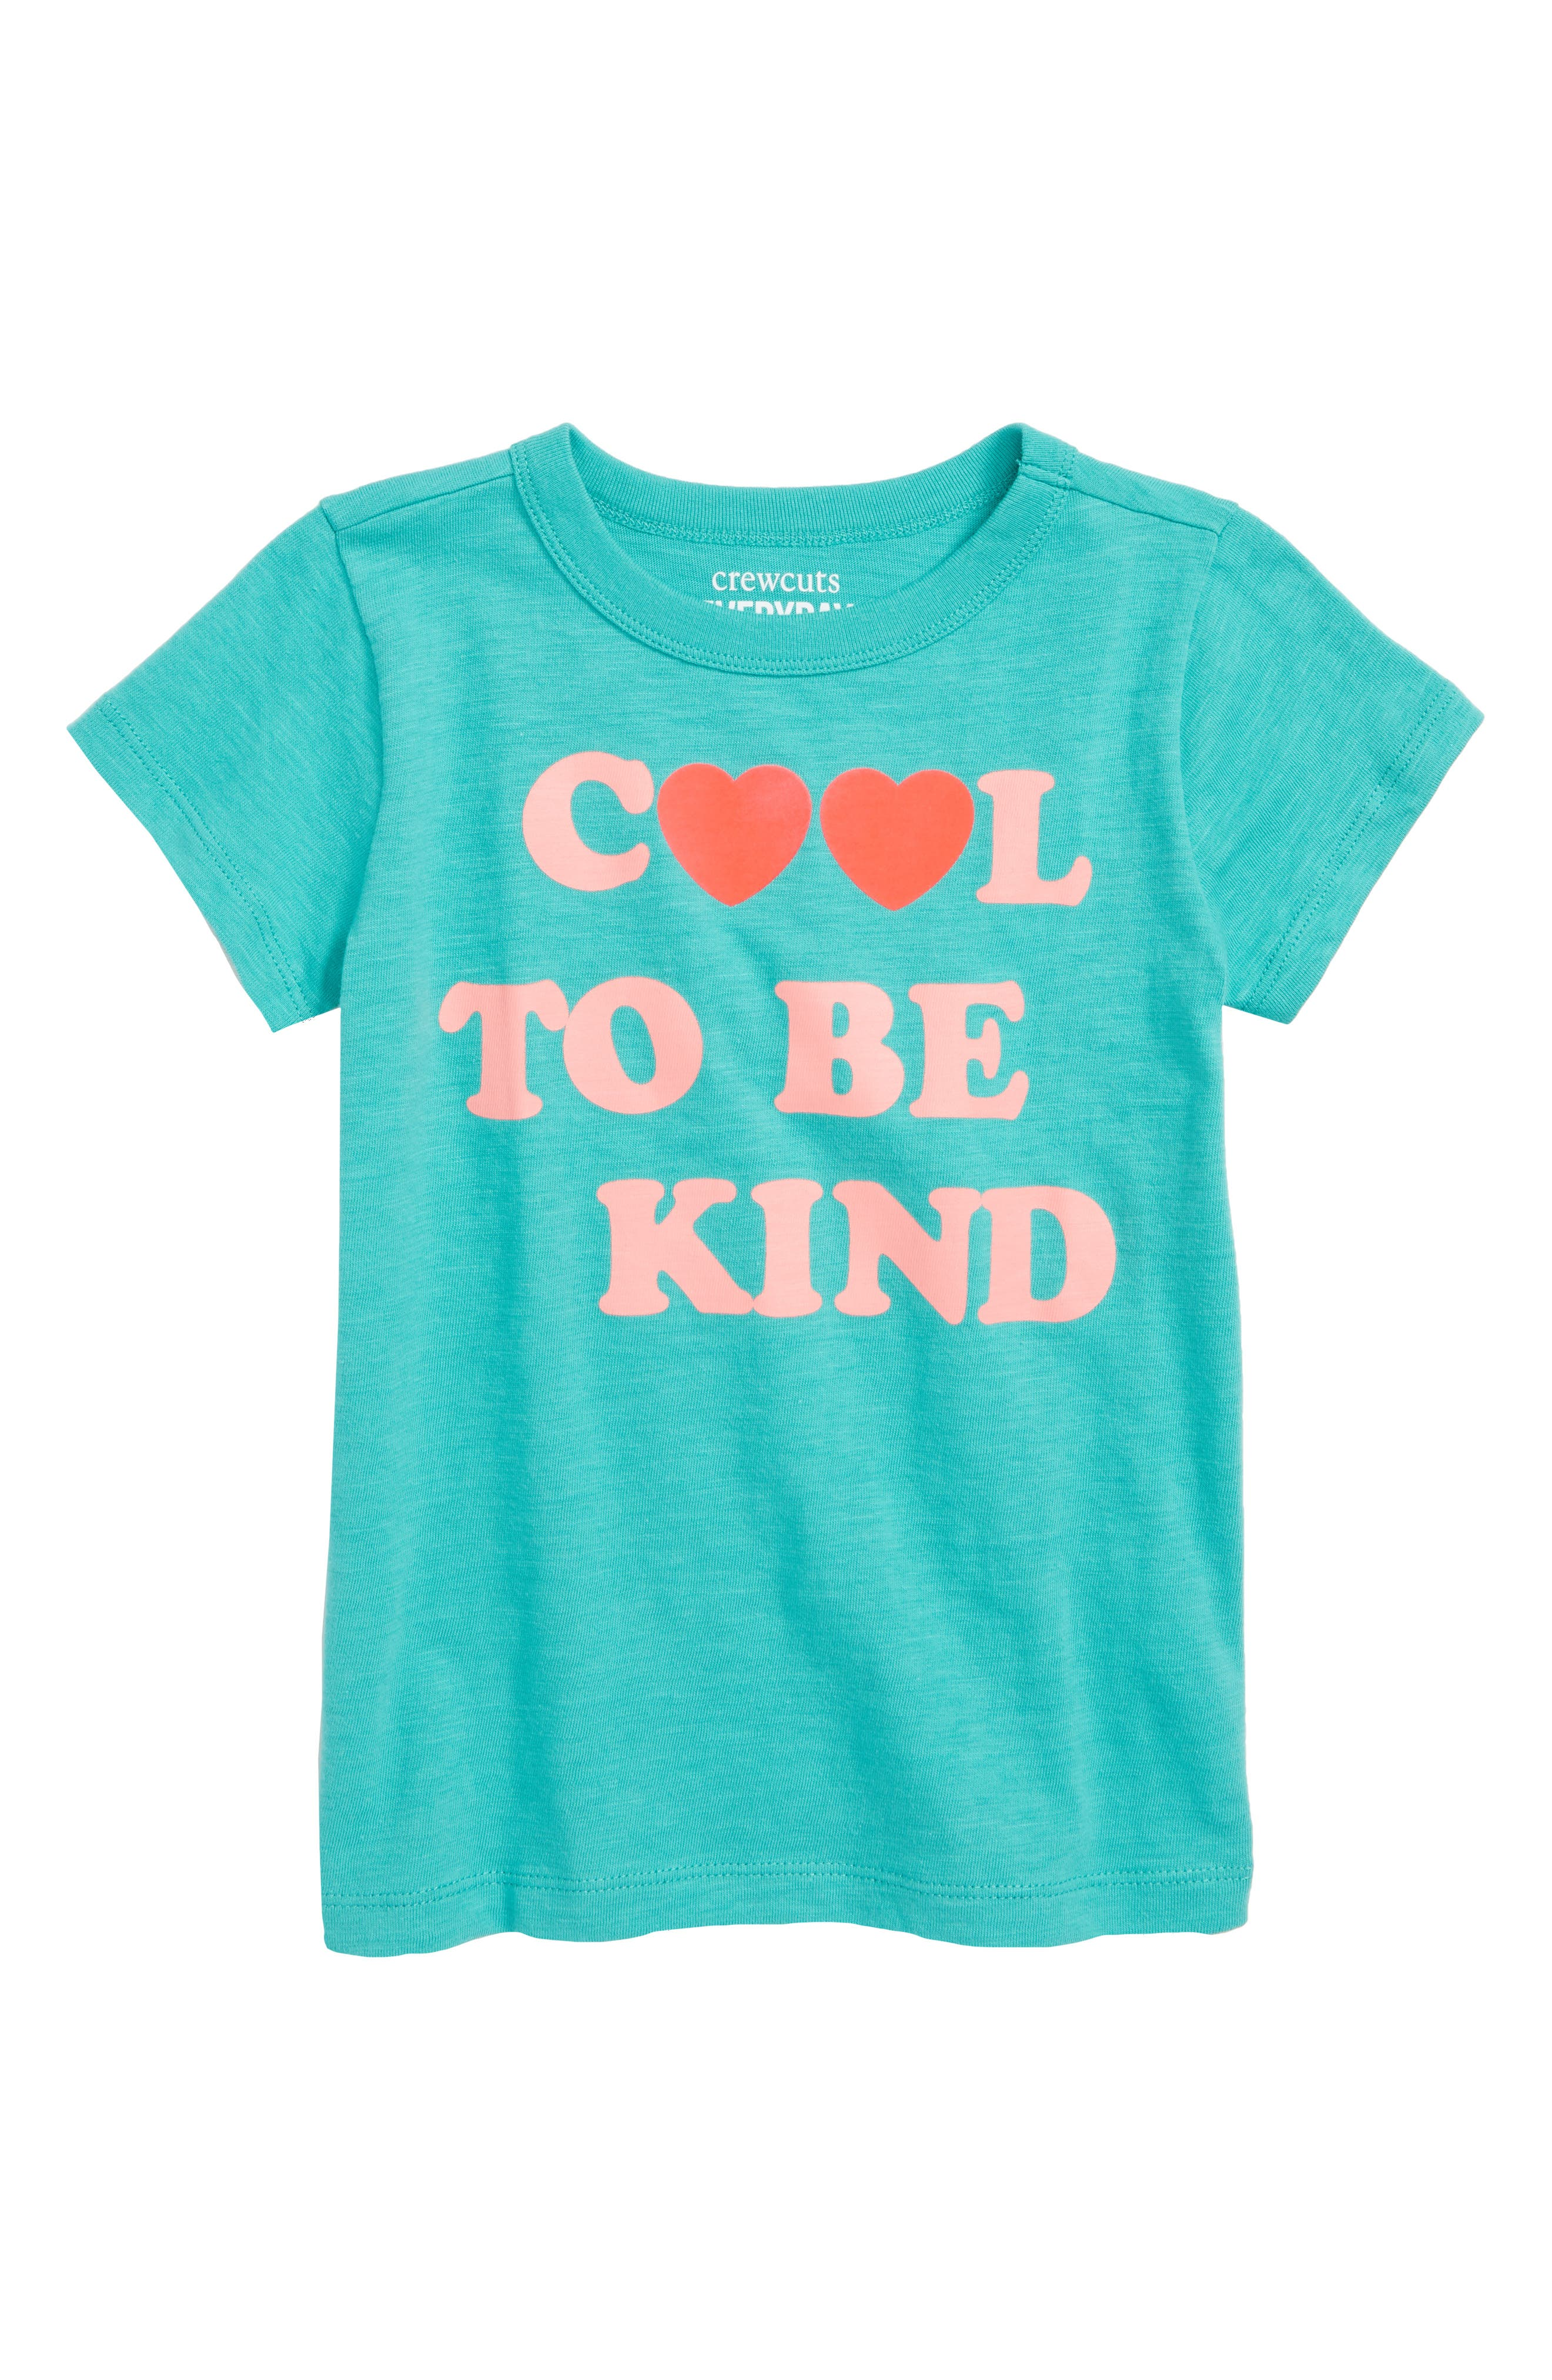 CREWCUTS BY J.CREW,                             crewcuts by J. Crew Cool to Be Kind Graphic Tee,                             Main thumbnail 1, color,                             300